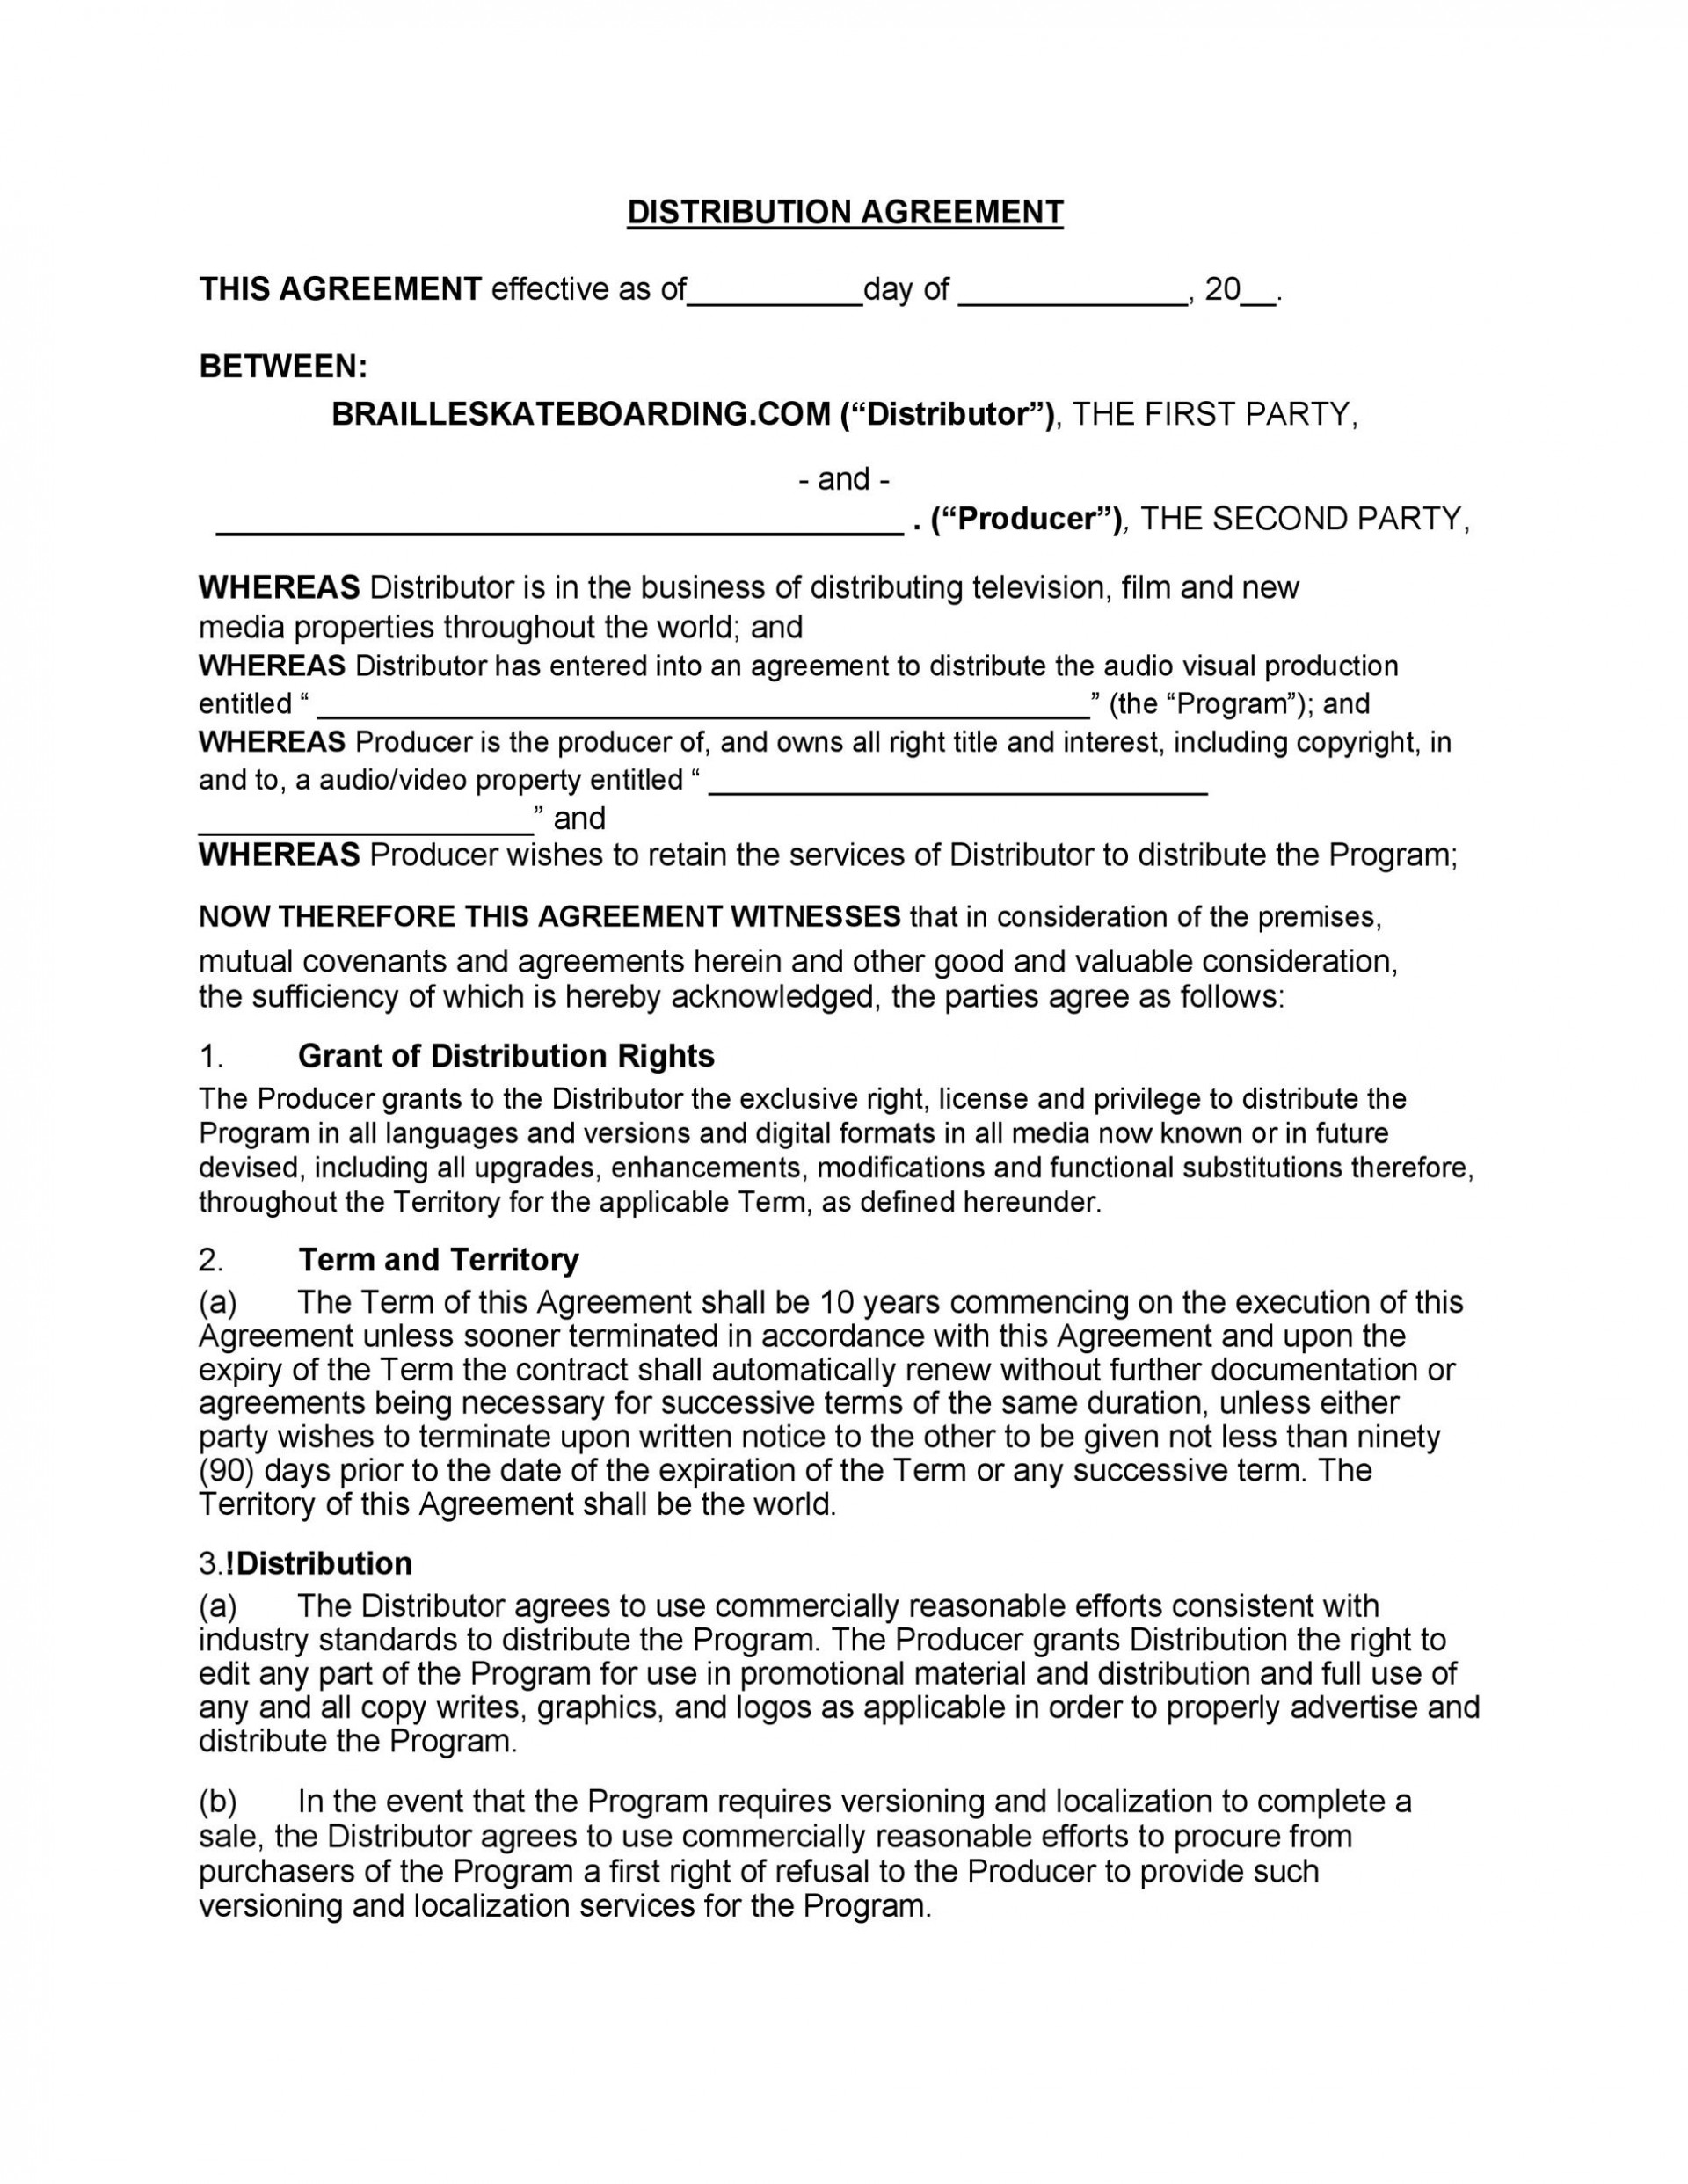 005 Magnificent Distribution Agreement Template Word High Definition  Distributor Exclusive Contract1920